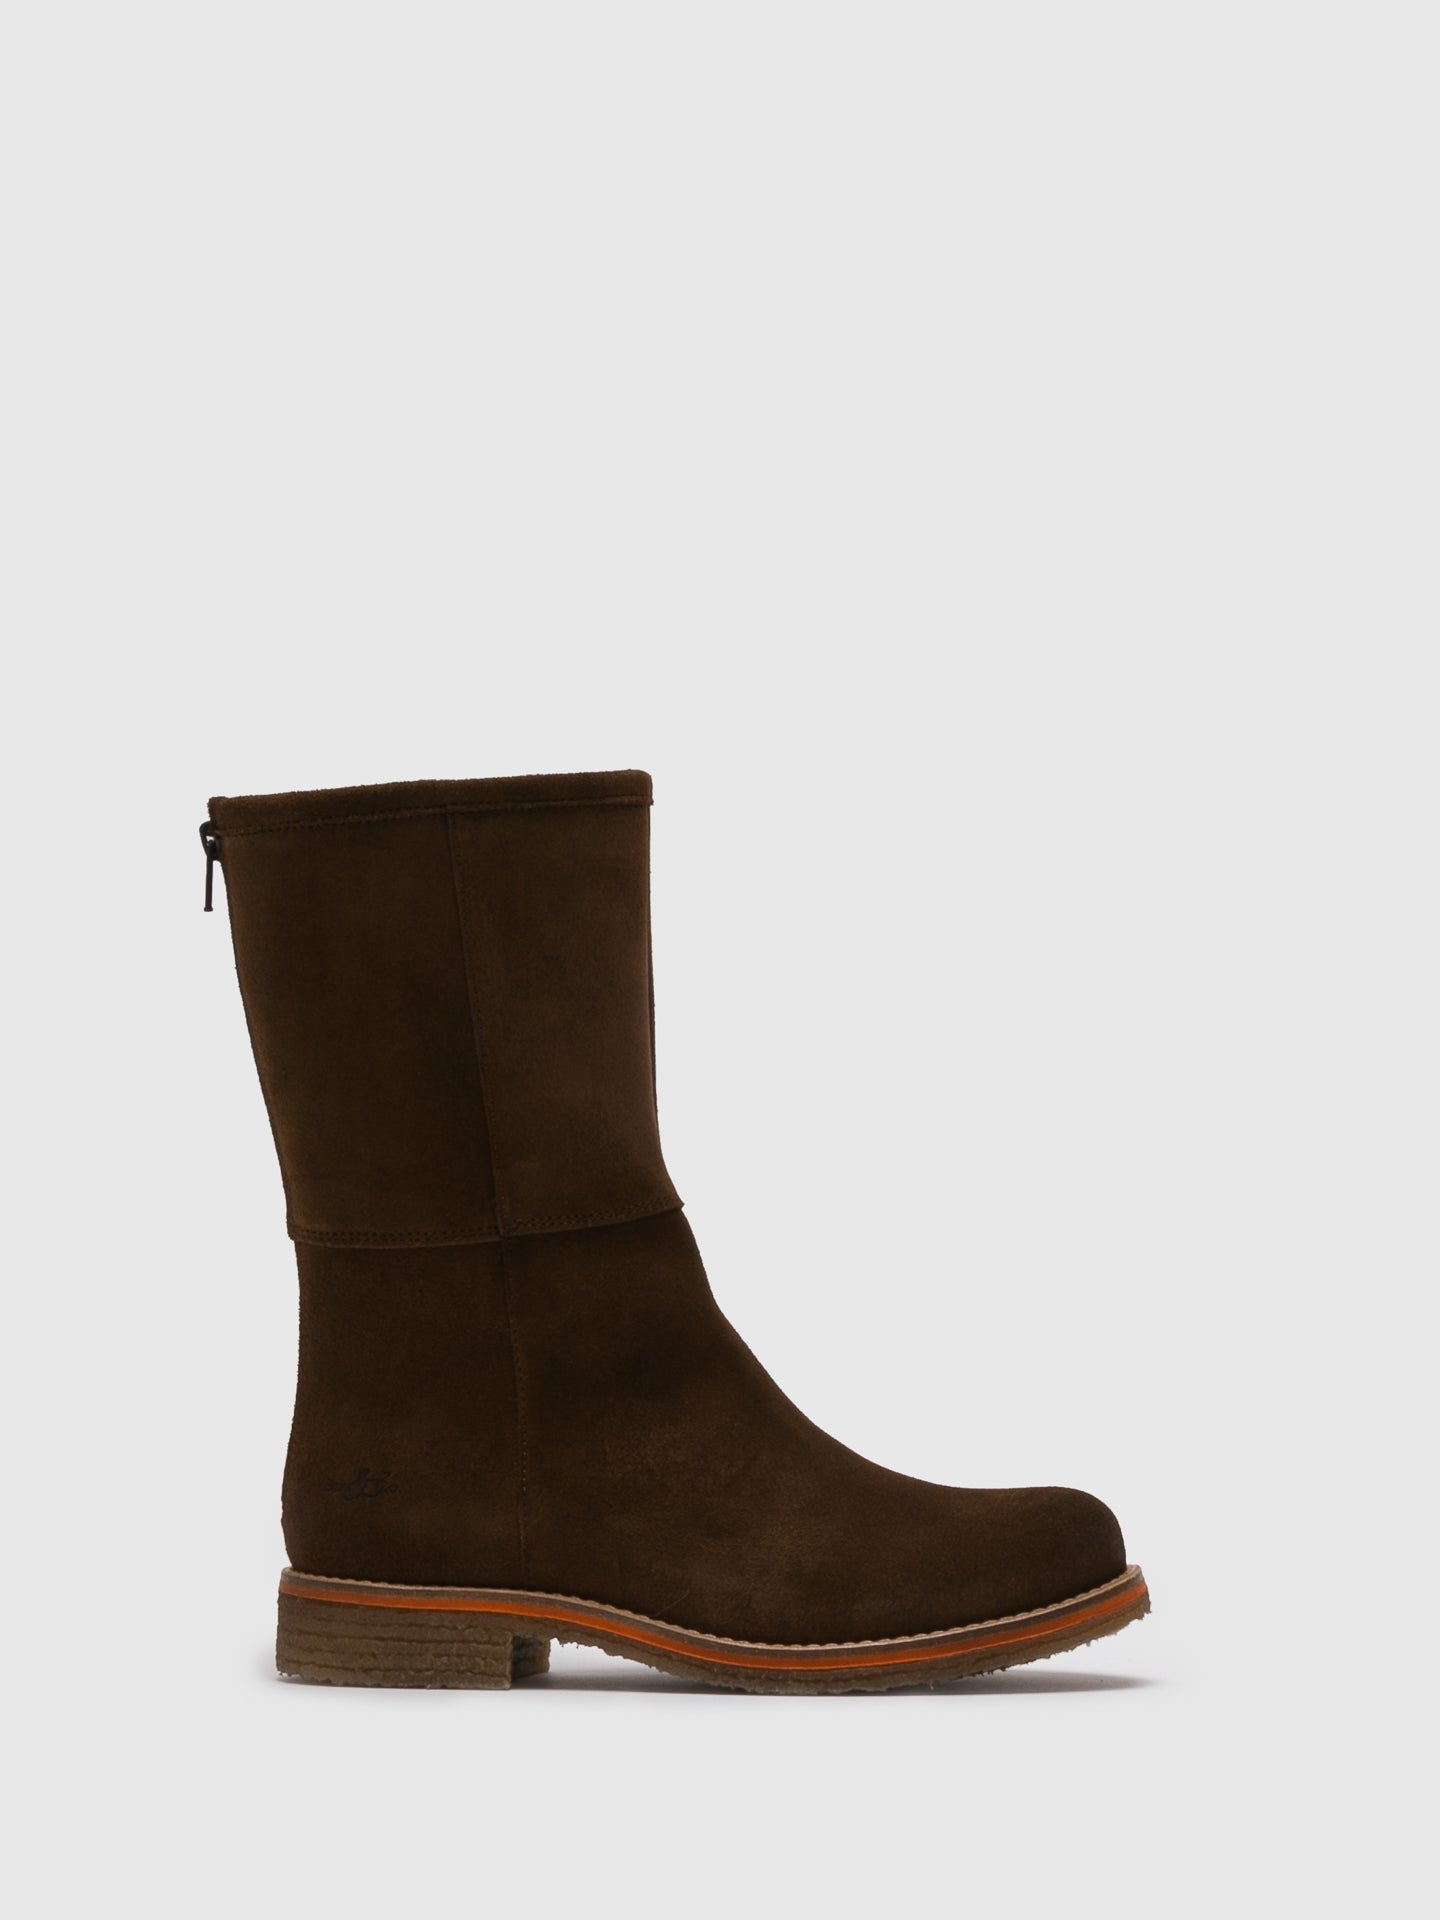 Bos&Co Beige Zip Up Boots